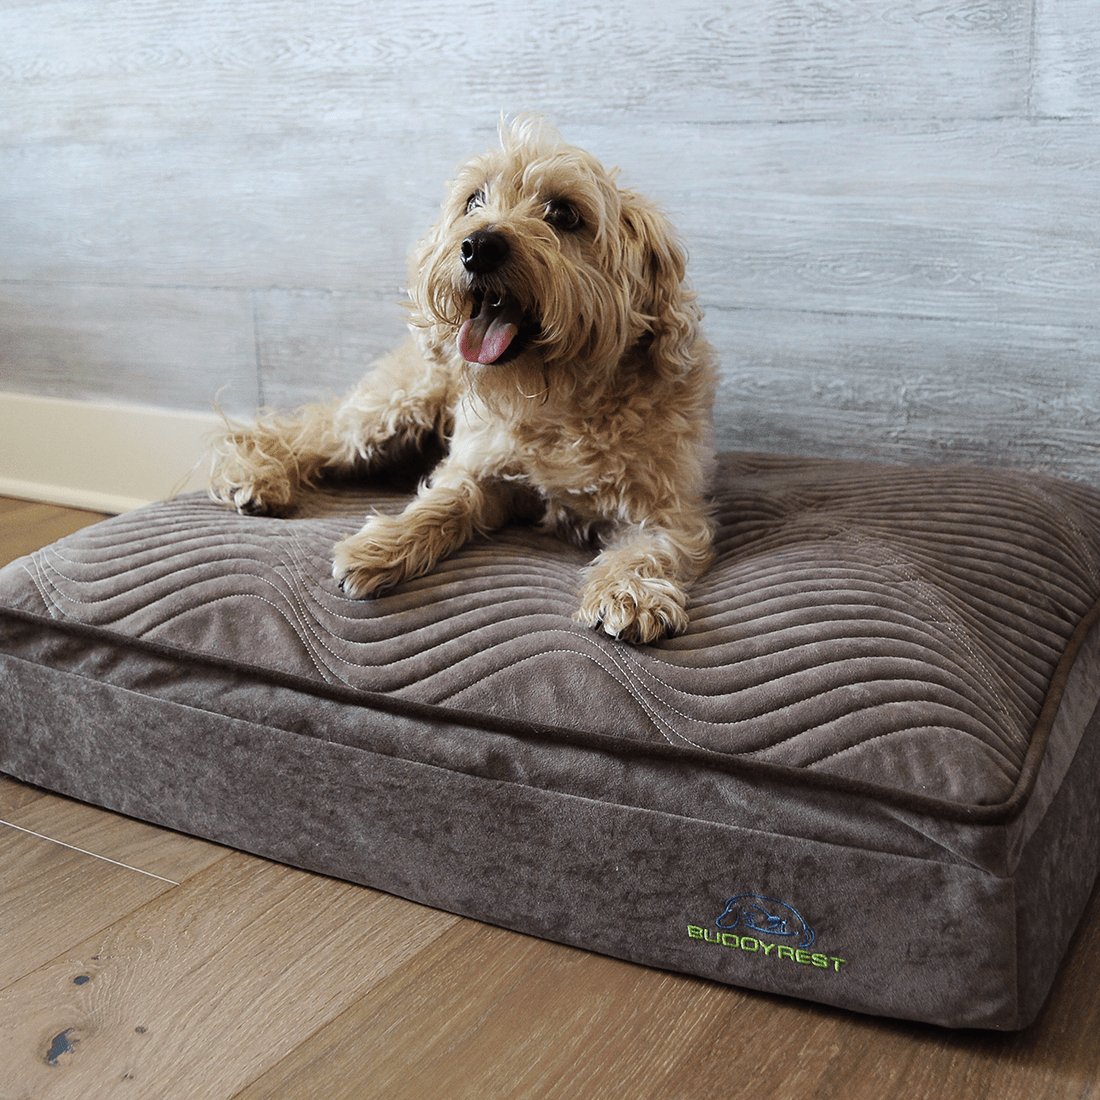 Affinity Pillow Top Hybrid Orthopedic Dog Bed